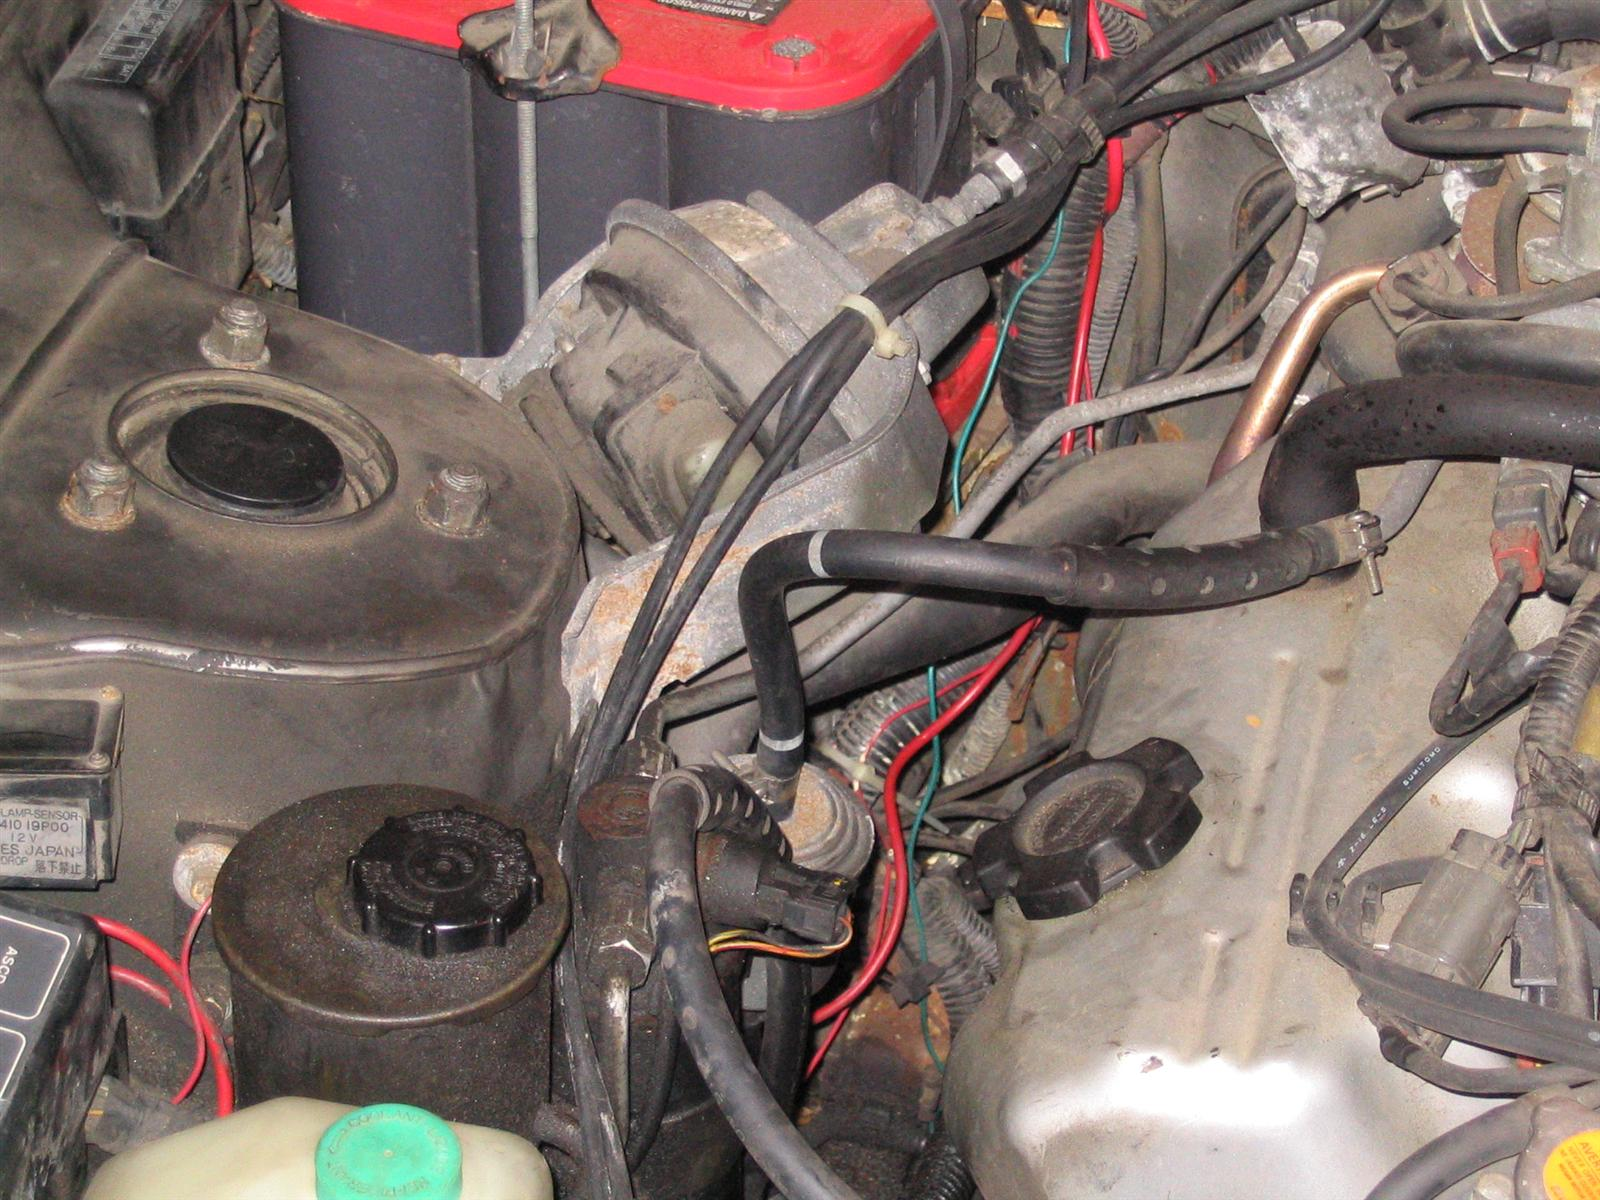 LZ_0219] 1989 300Zx Fuel Filter Removal Schematic WiringPschts Salv Trons Mohammedshrine Librar Wiring 101